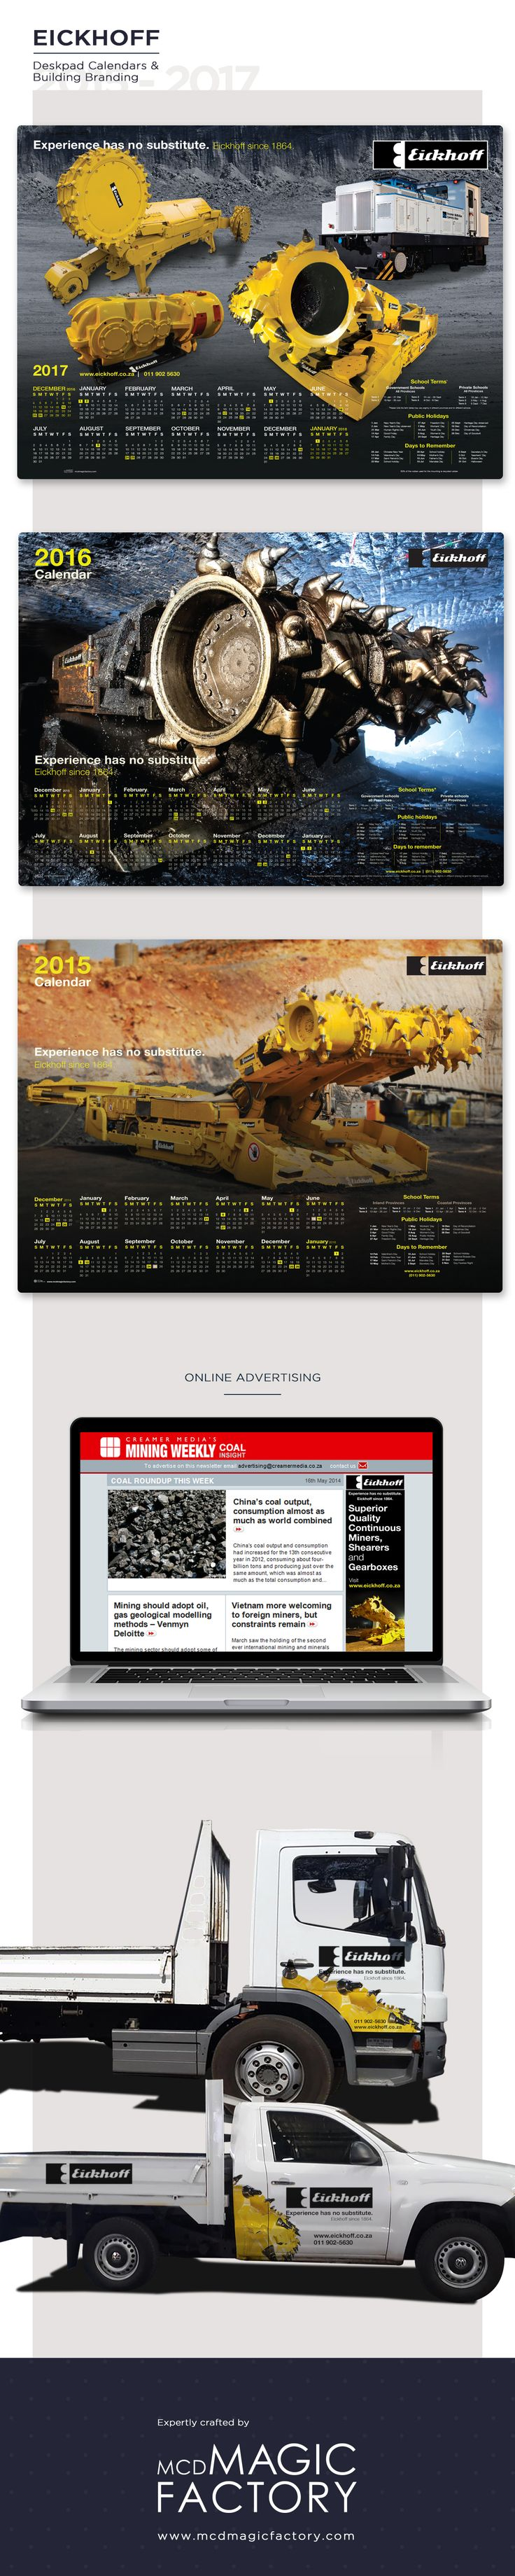 Client: Eickhoff | Design and production of deskpad calendars, online advertising and branded collateral for the mining equipment company.